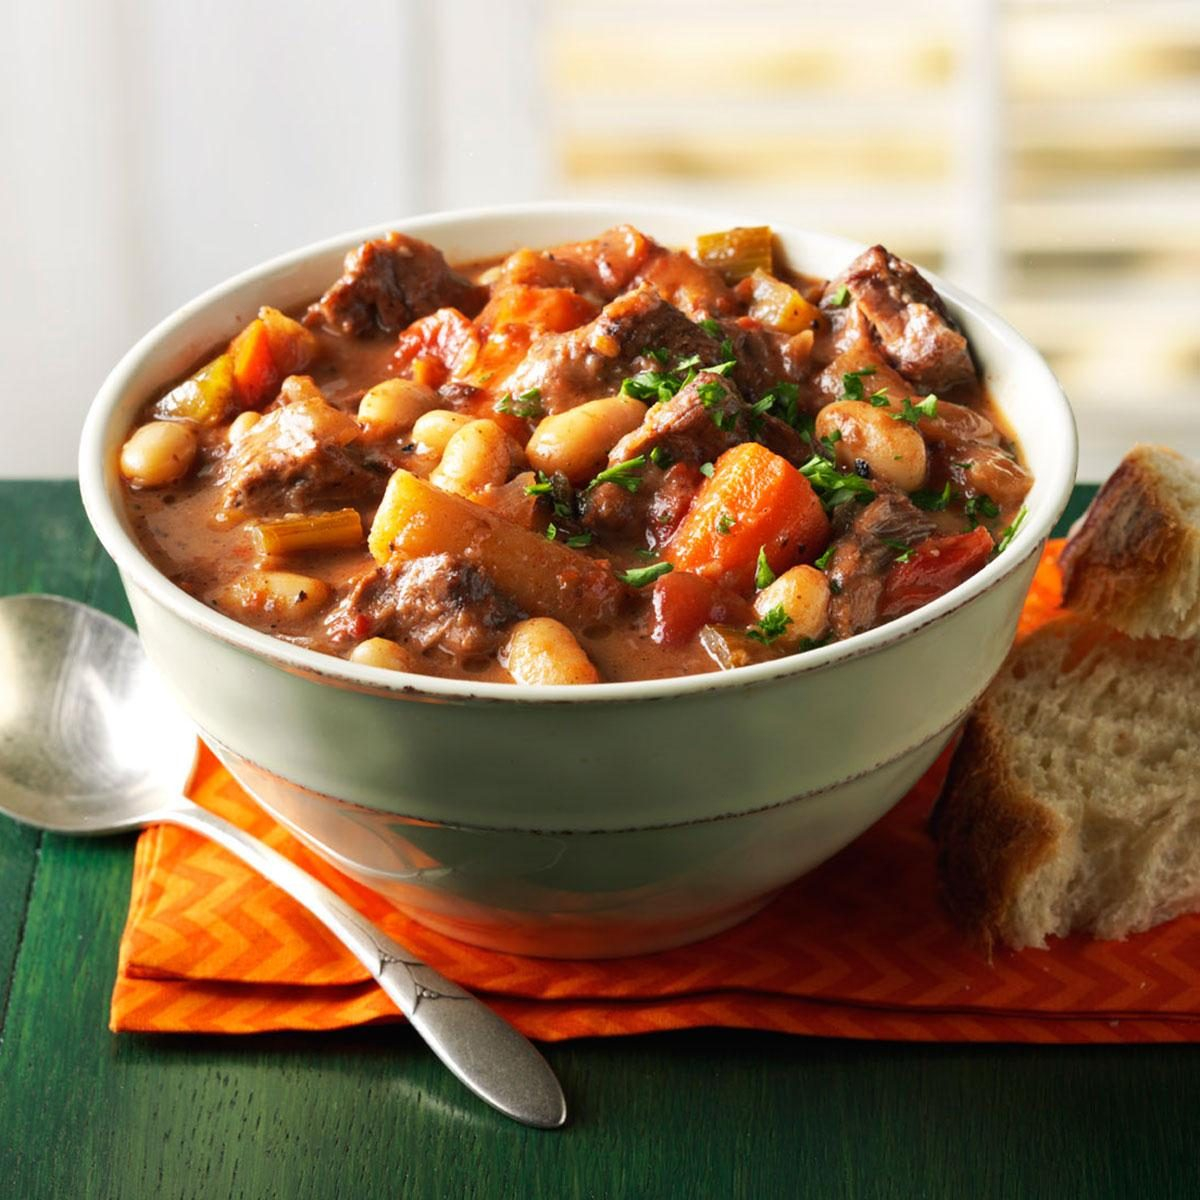 Wintertime Braised Beef Stew Recipe